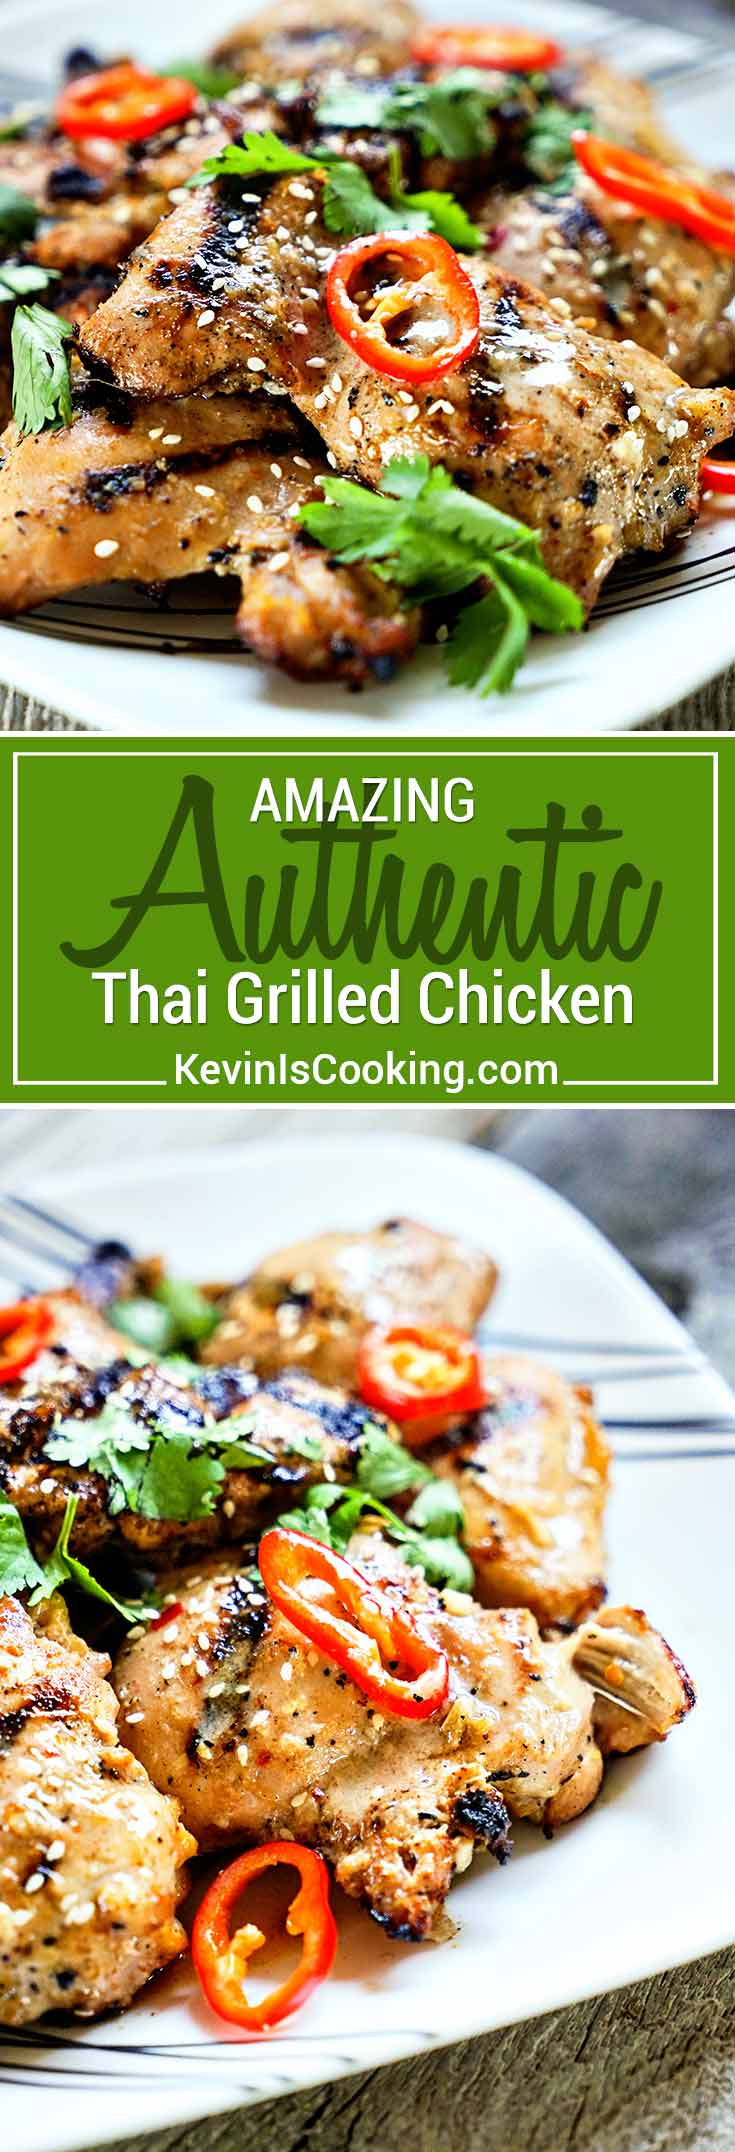 Tasty, authentic Thai street food anyone? This Amazing Thai Grilled Chicken delivers BIG time on flavor using freshlemongrass and fish sauce in the marinade.